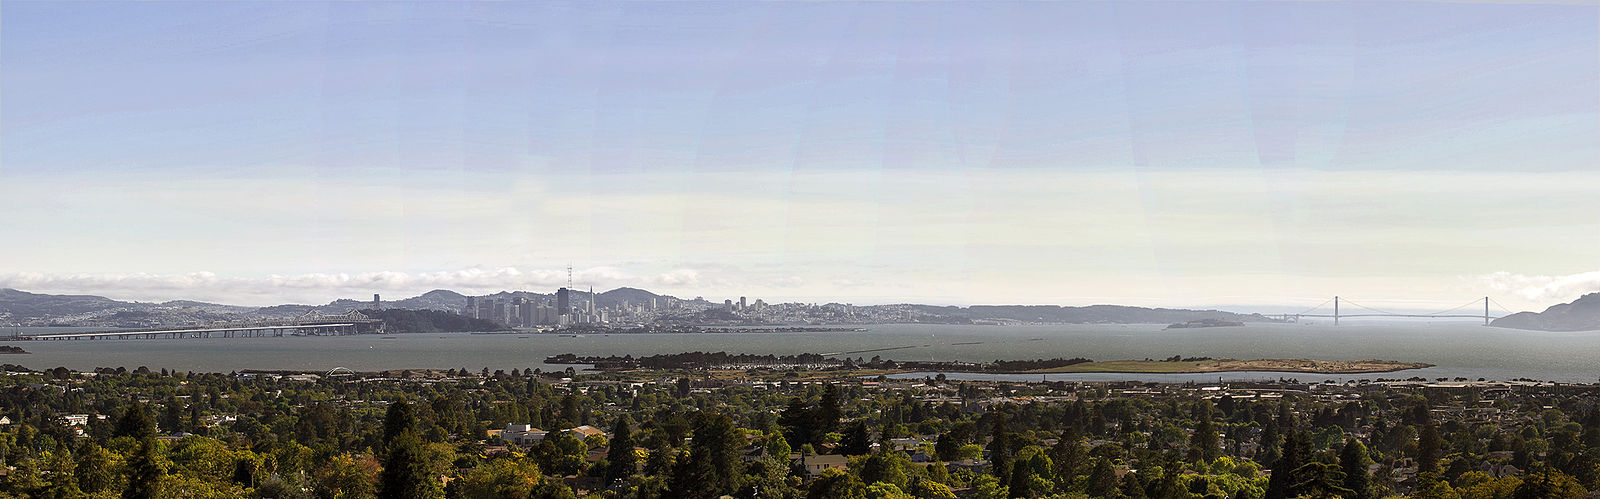 The city as seen from Indian Rock Park in the North Berkeley Hills. Berkeley is in the foreground, with the Berkeley Marina and César Chávez Park just beyond. Indian rock.jpg